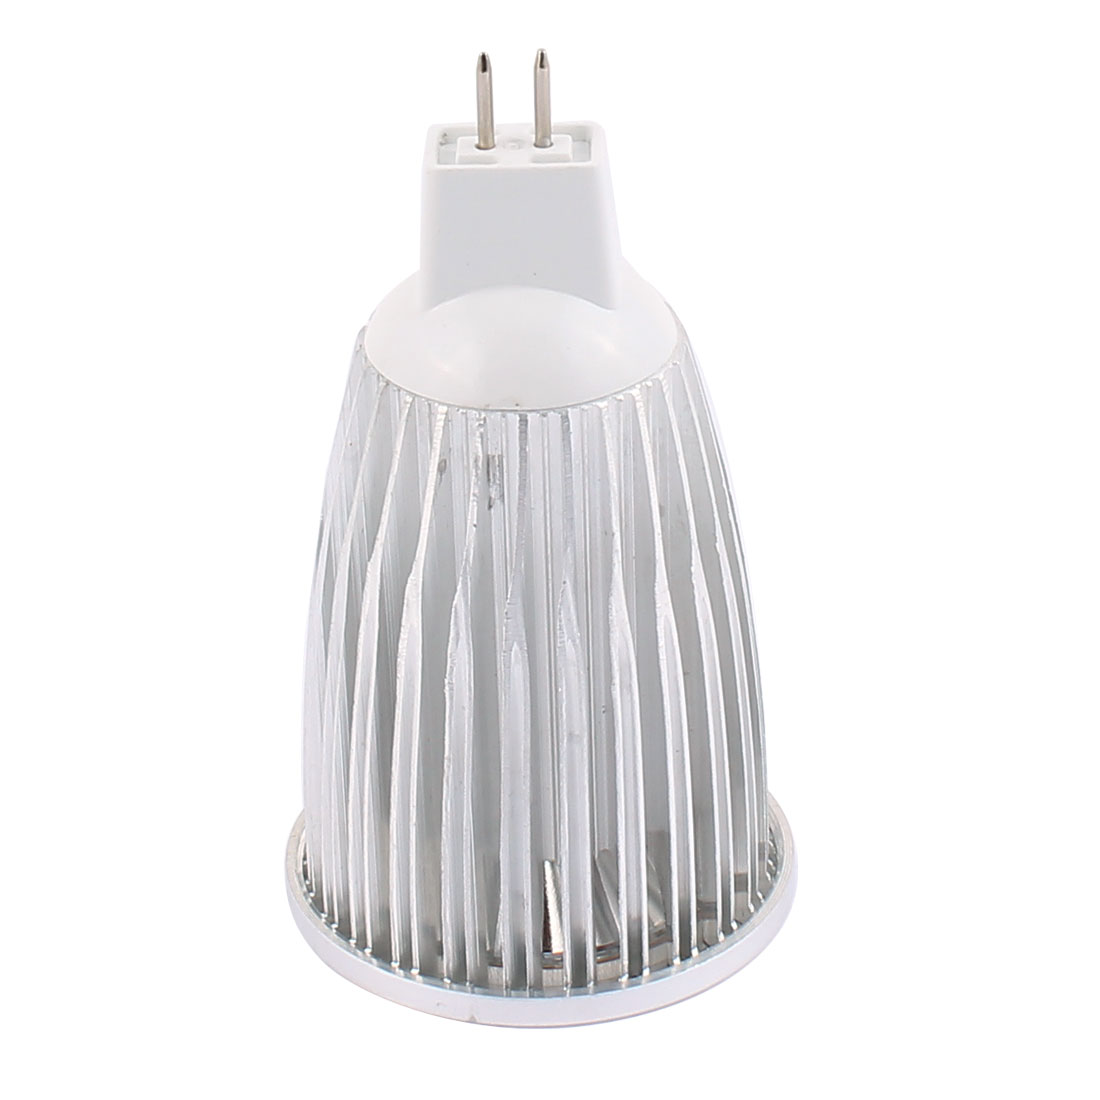 DC12V-7W-MR16-COB-LED-Spotlight-Lamp-Bulb-Energy-Saving-Downlight-Pure-White